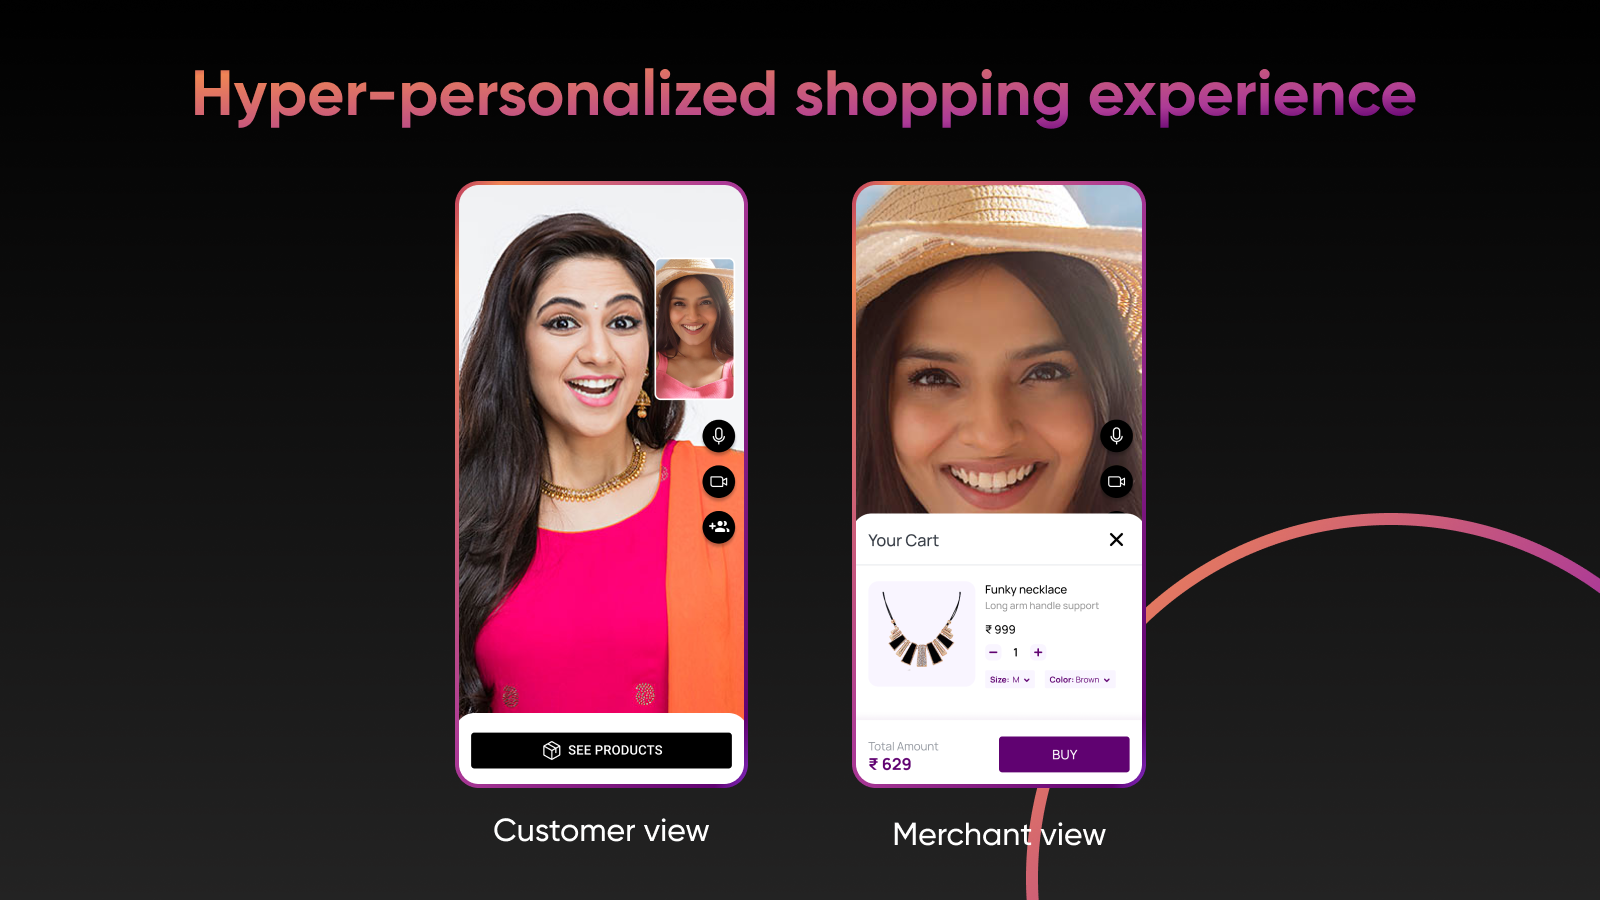 Hyper-personalized online shopping experience